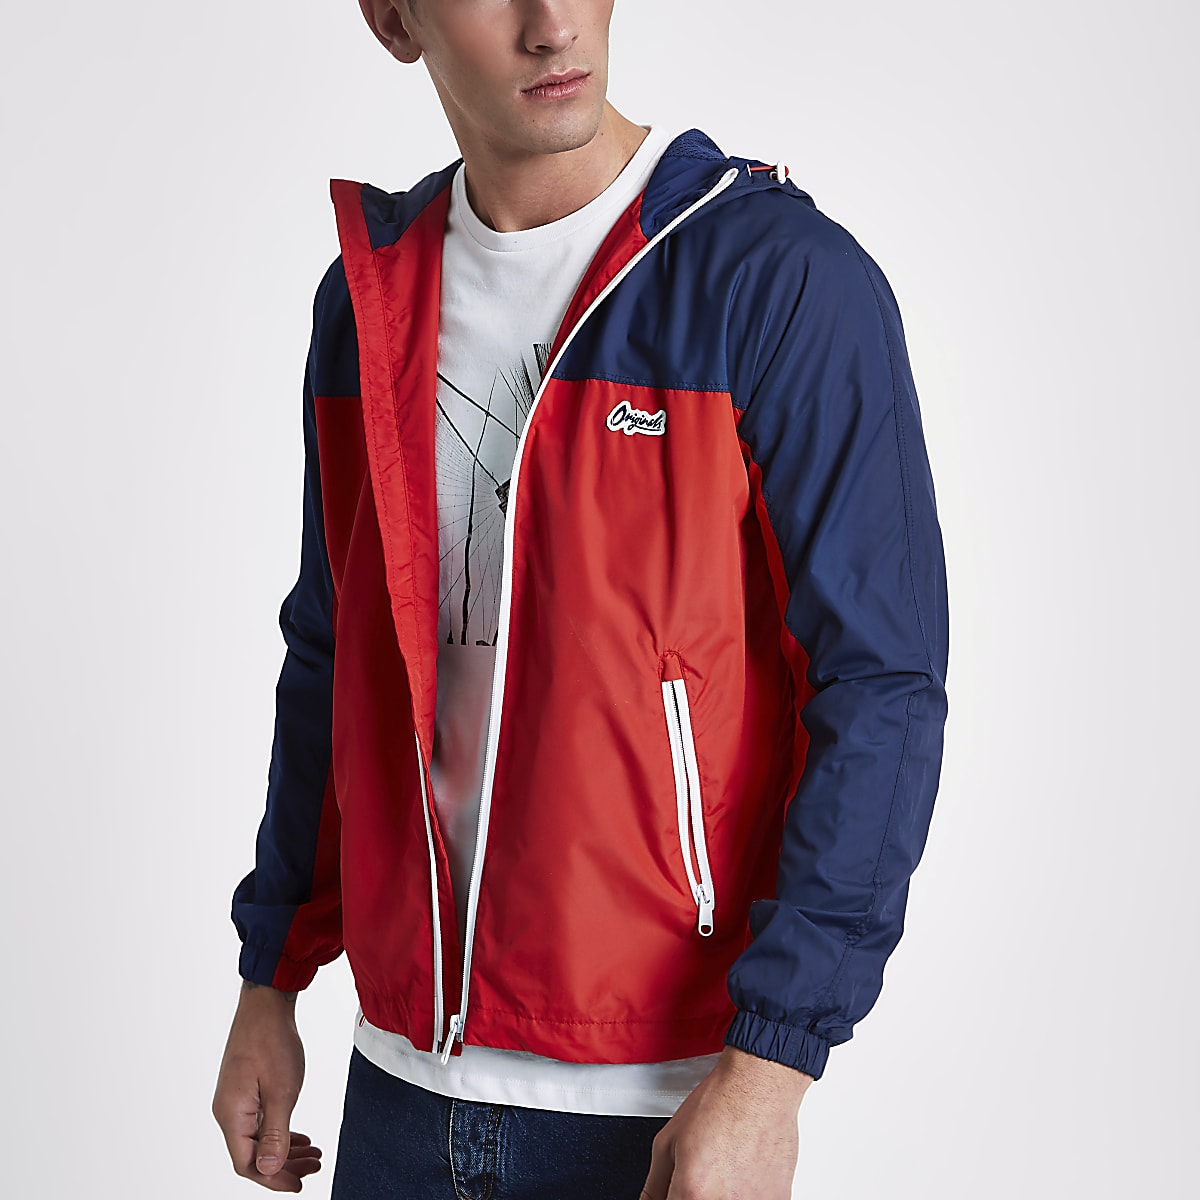 Jack & Jones red Originals lightweight jacket